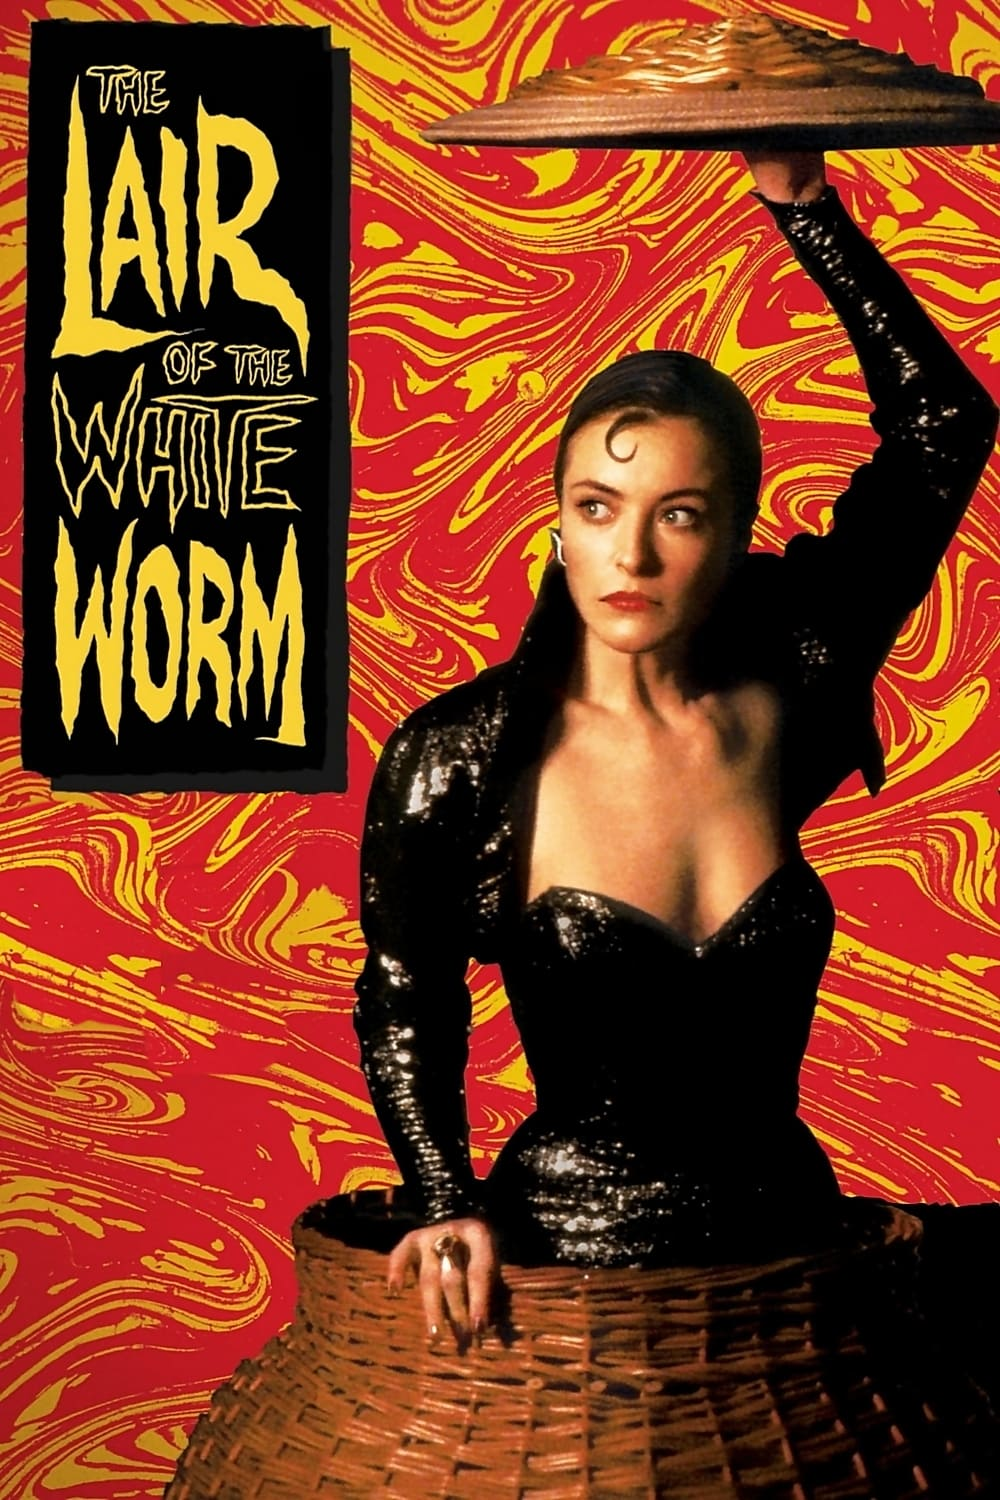 Poster for The Lair of the White Worm